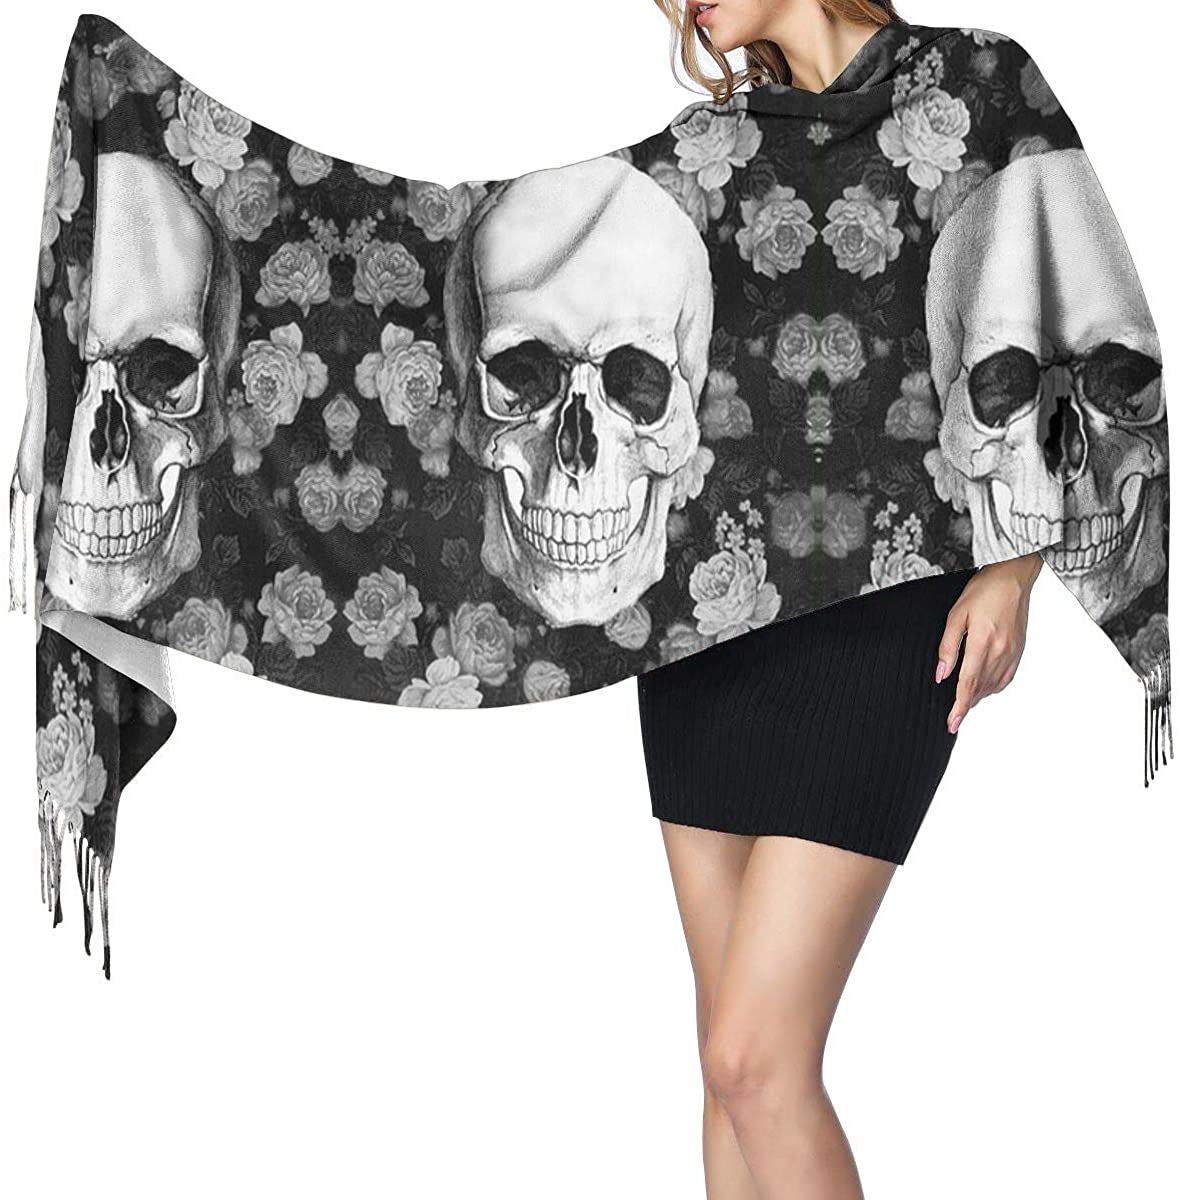 Rose Skull Women's Winter Warm Scarf Fashion Long Large Soft Cashmere Shawl Wrap Scarves